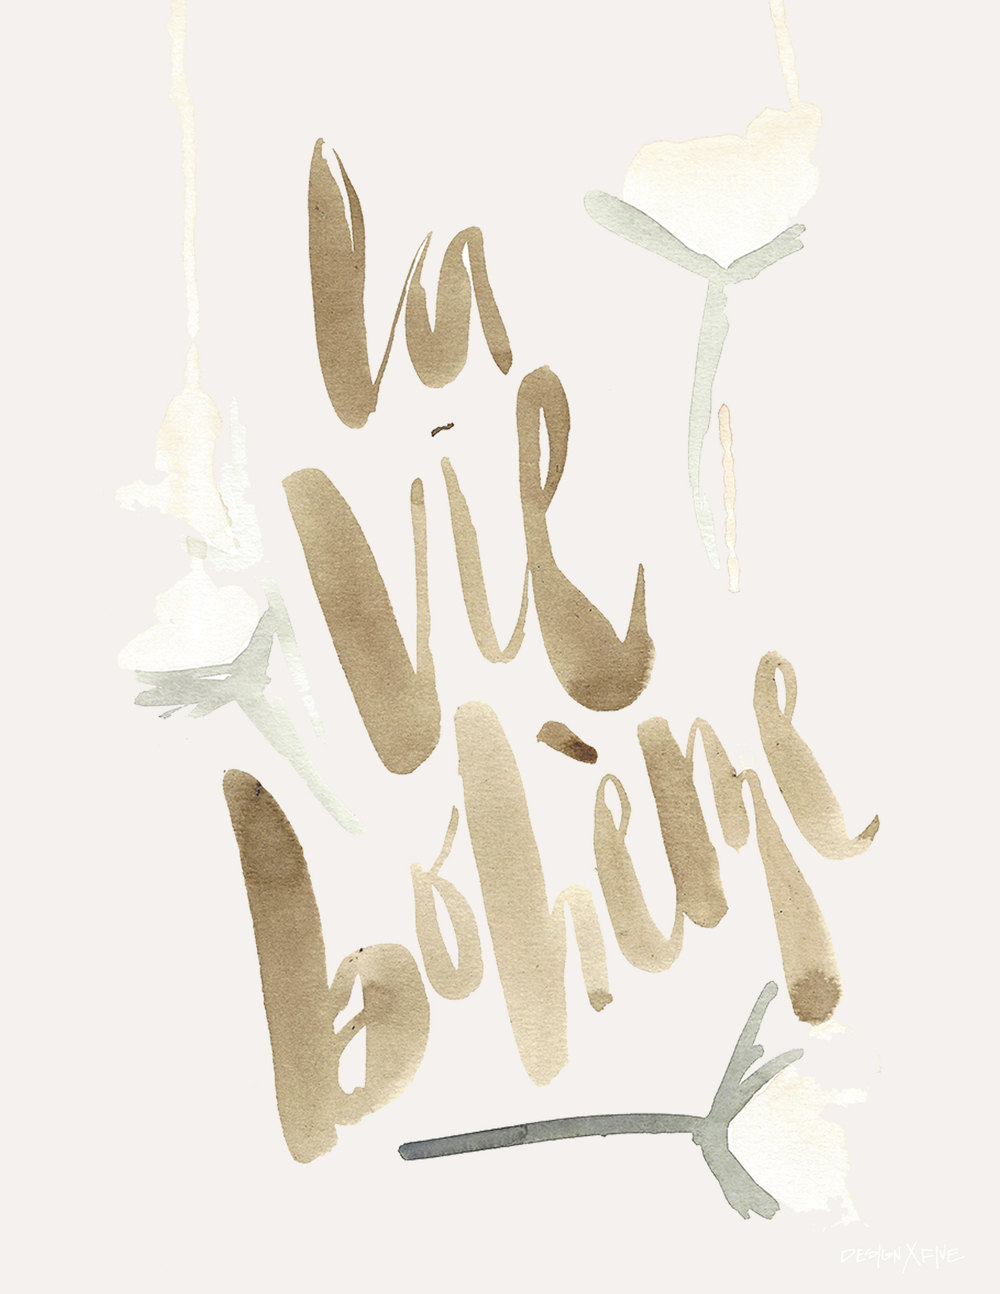 la-vie-boheme-design-x-five-lettering-illustration